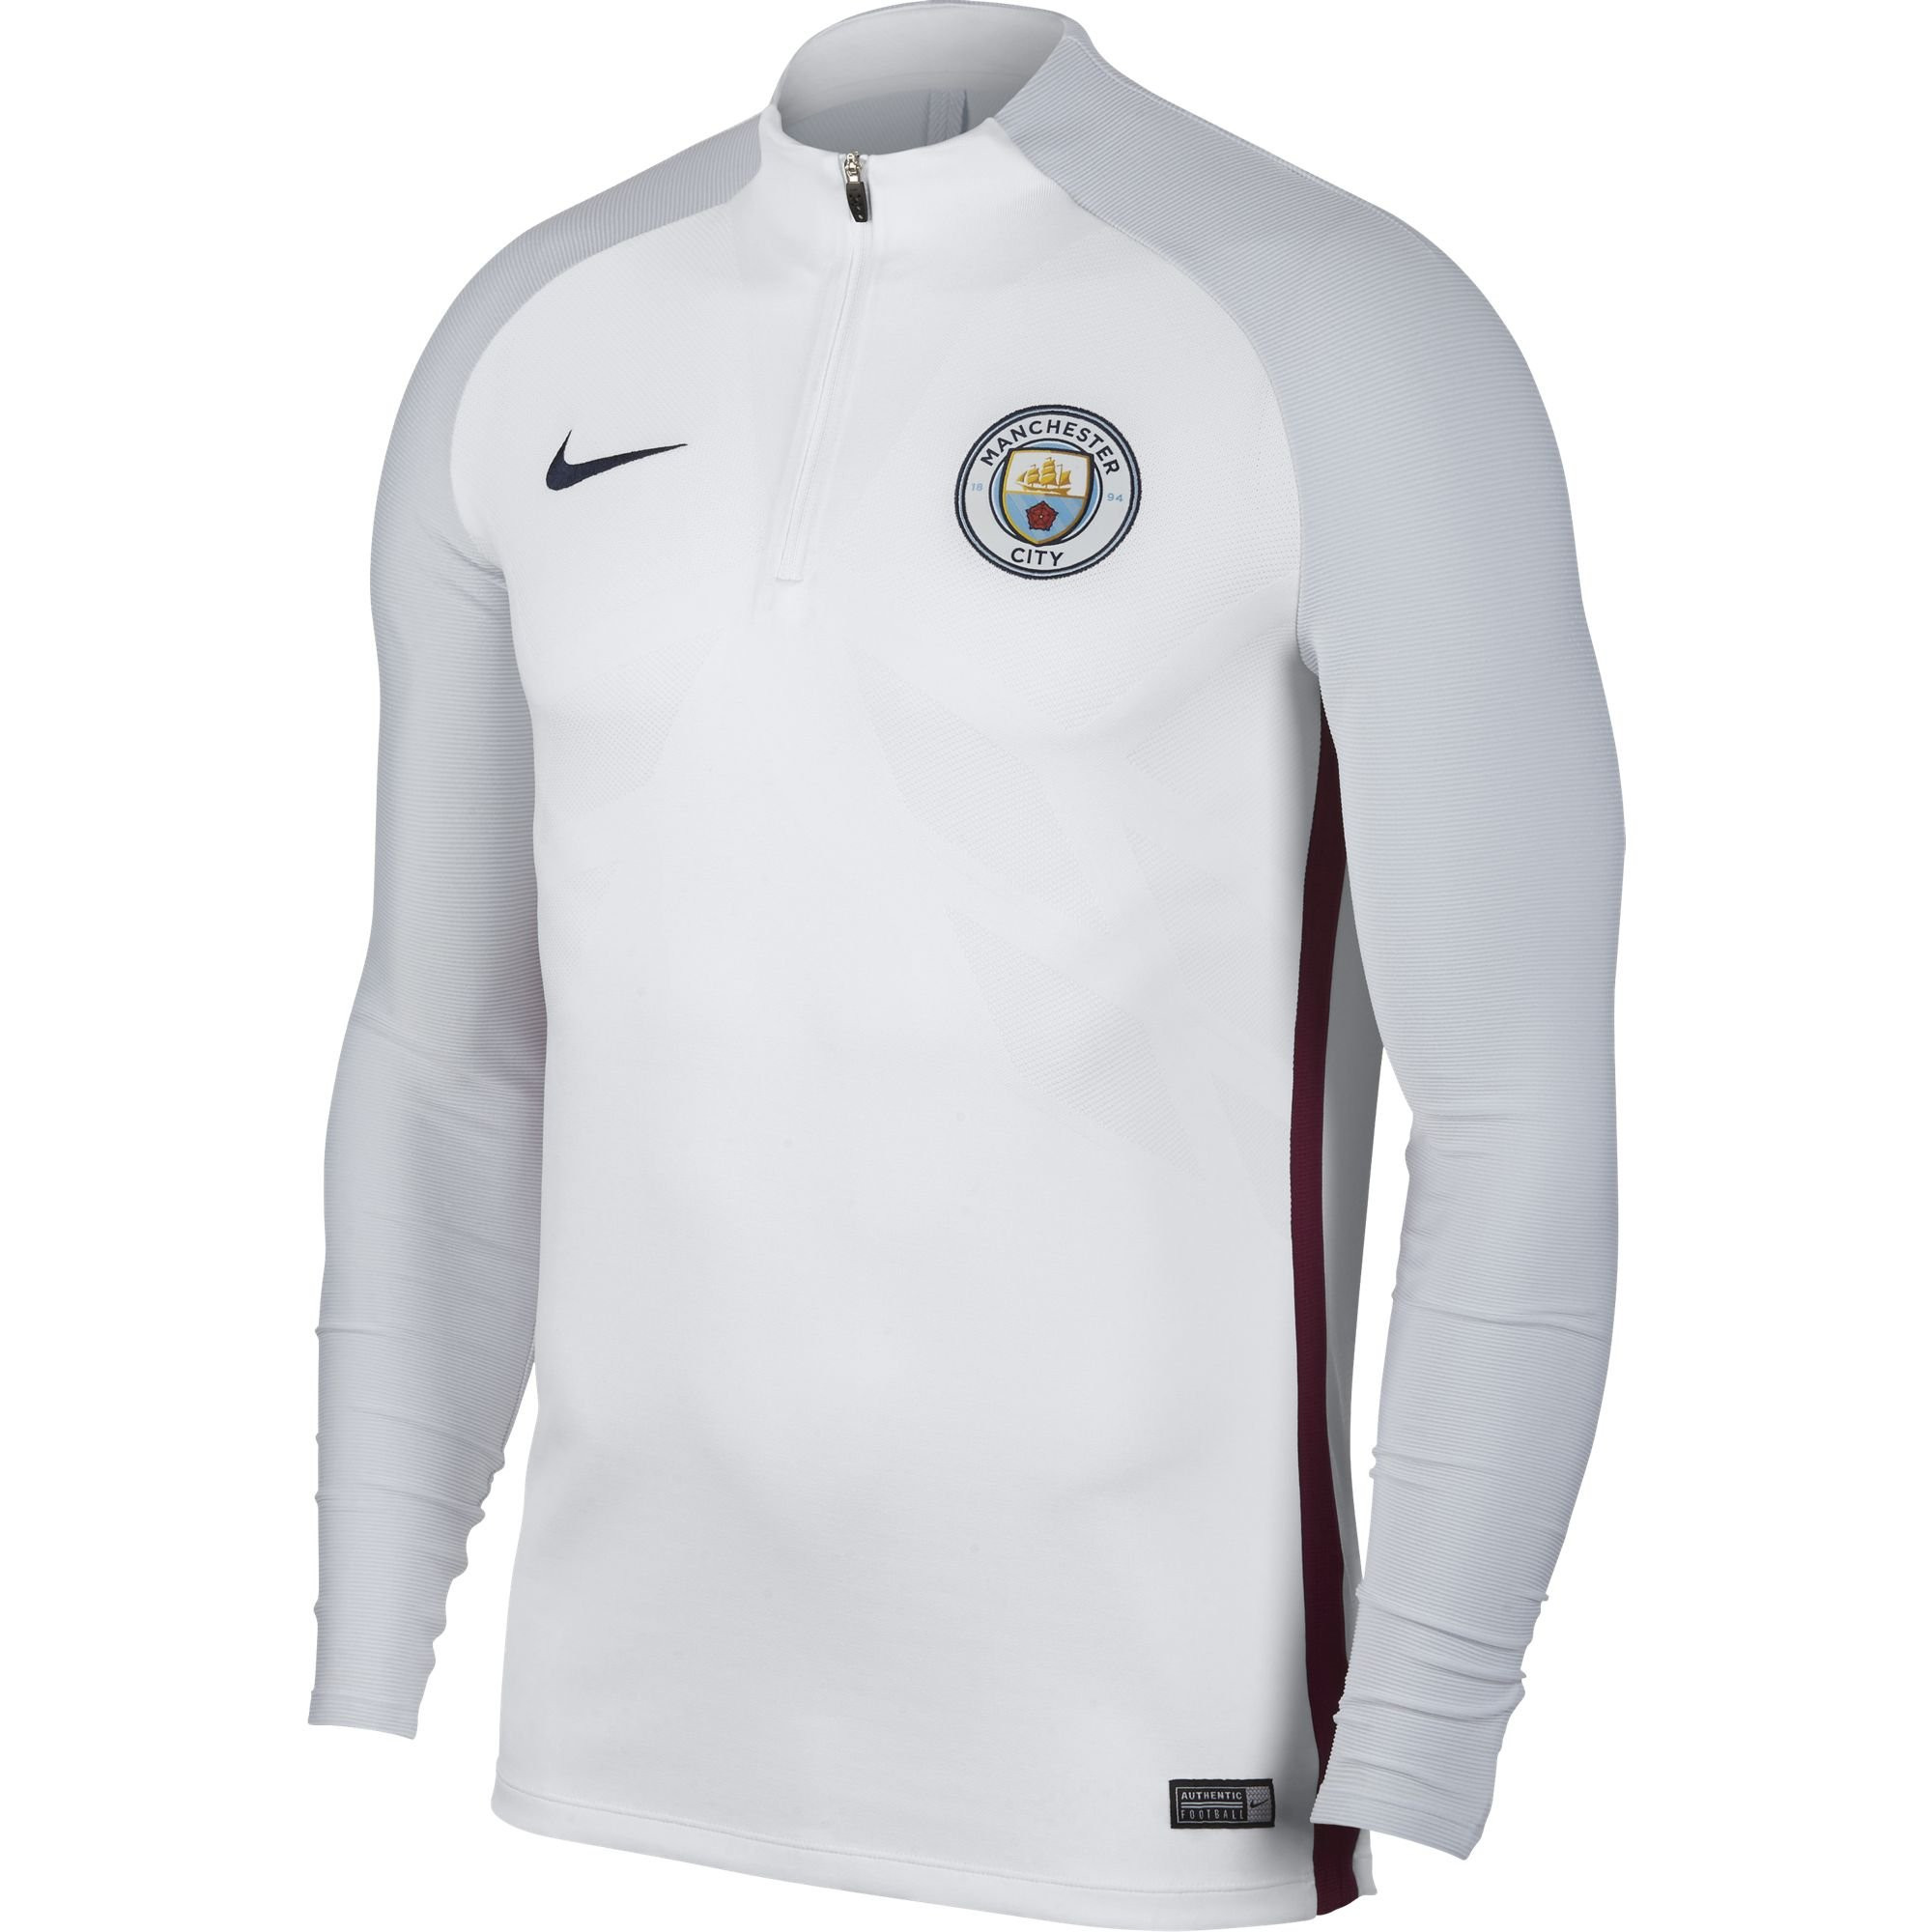 nike manchester city trg top elite blanc 2018 club etrangers. Black Bedroom Furniture Sets. Home Design Ideas